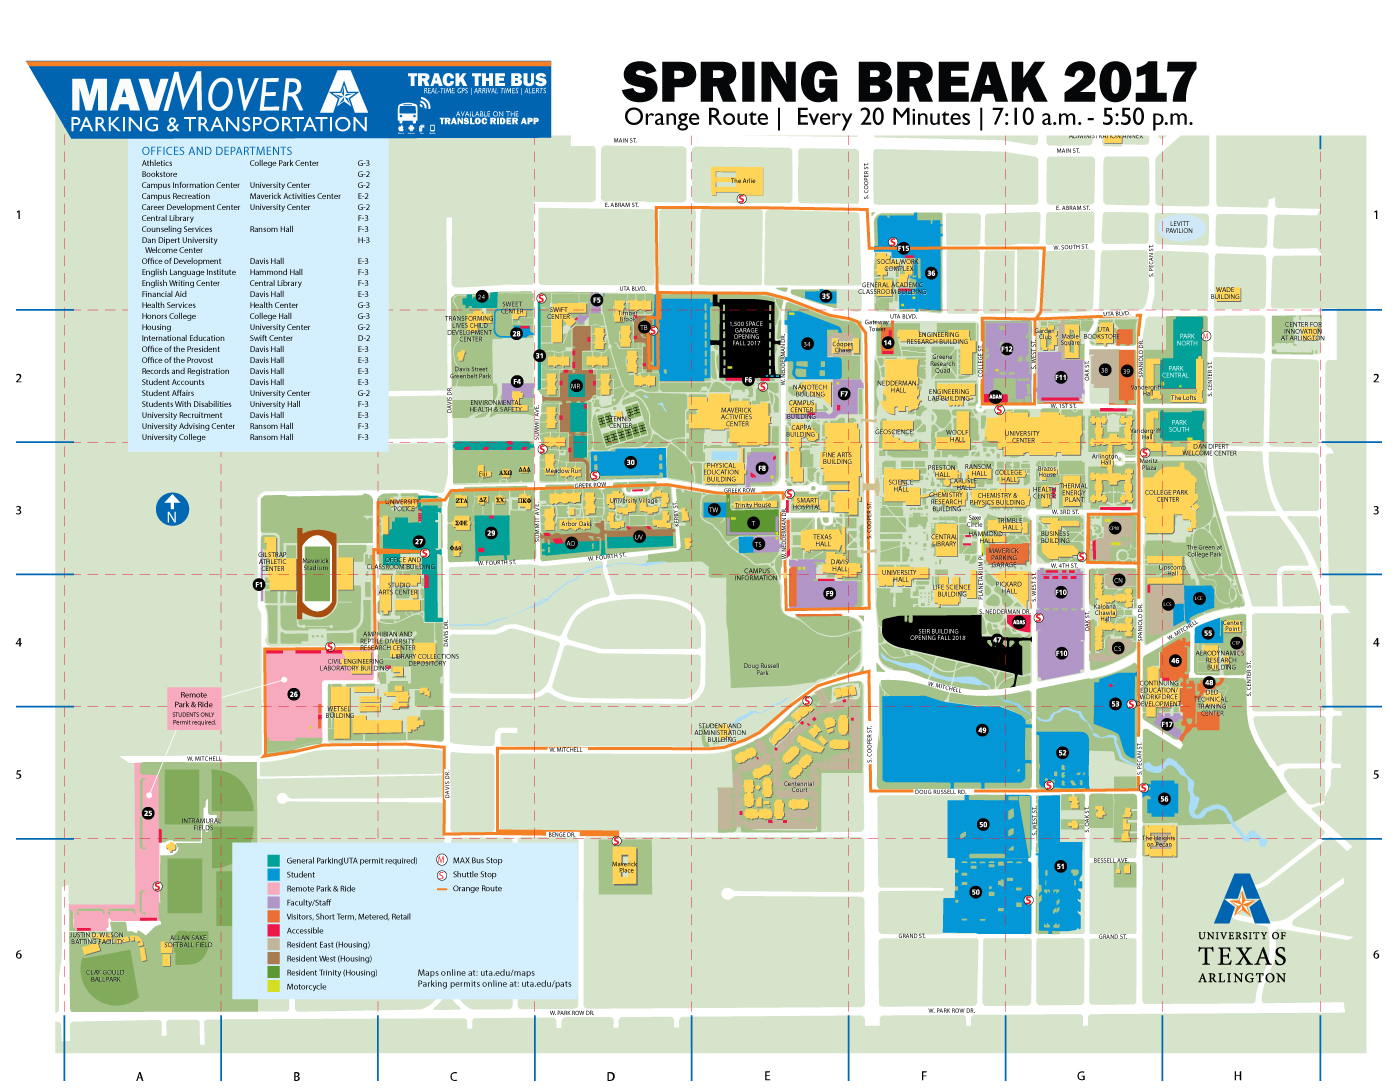 university of texas at arlington campus map 2017 Spring Break Bus Route Parking And Transportation Services